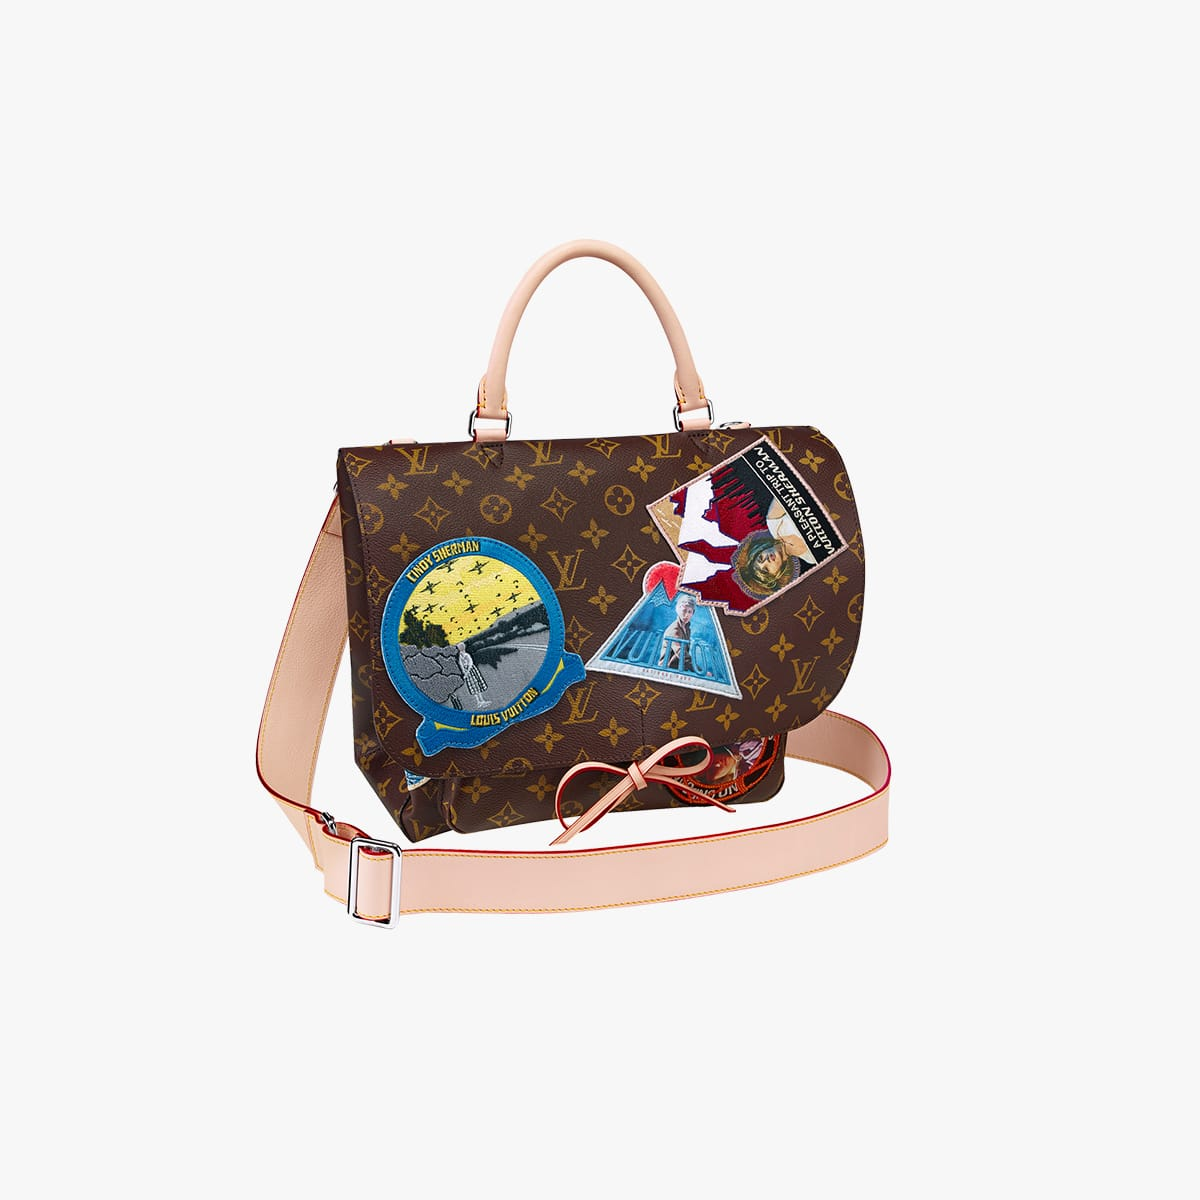 louis vuitton monogram iconoclasts bag collection reference guide